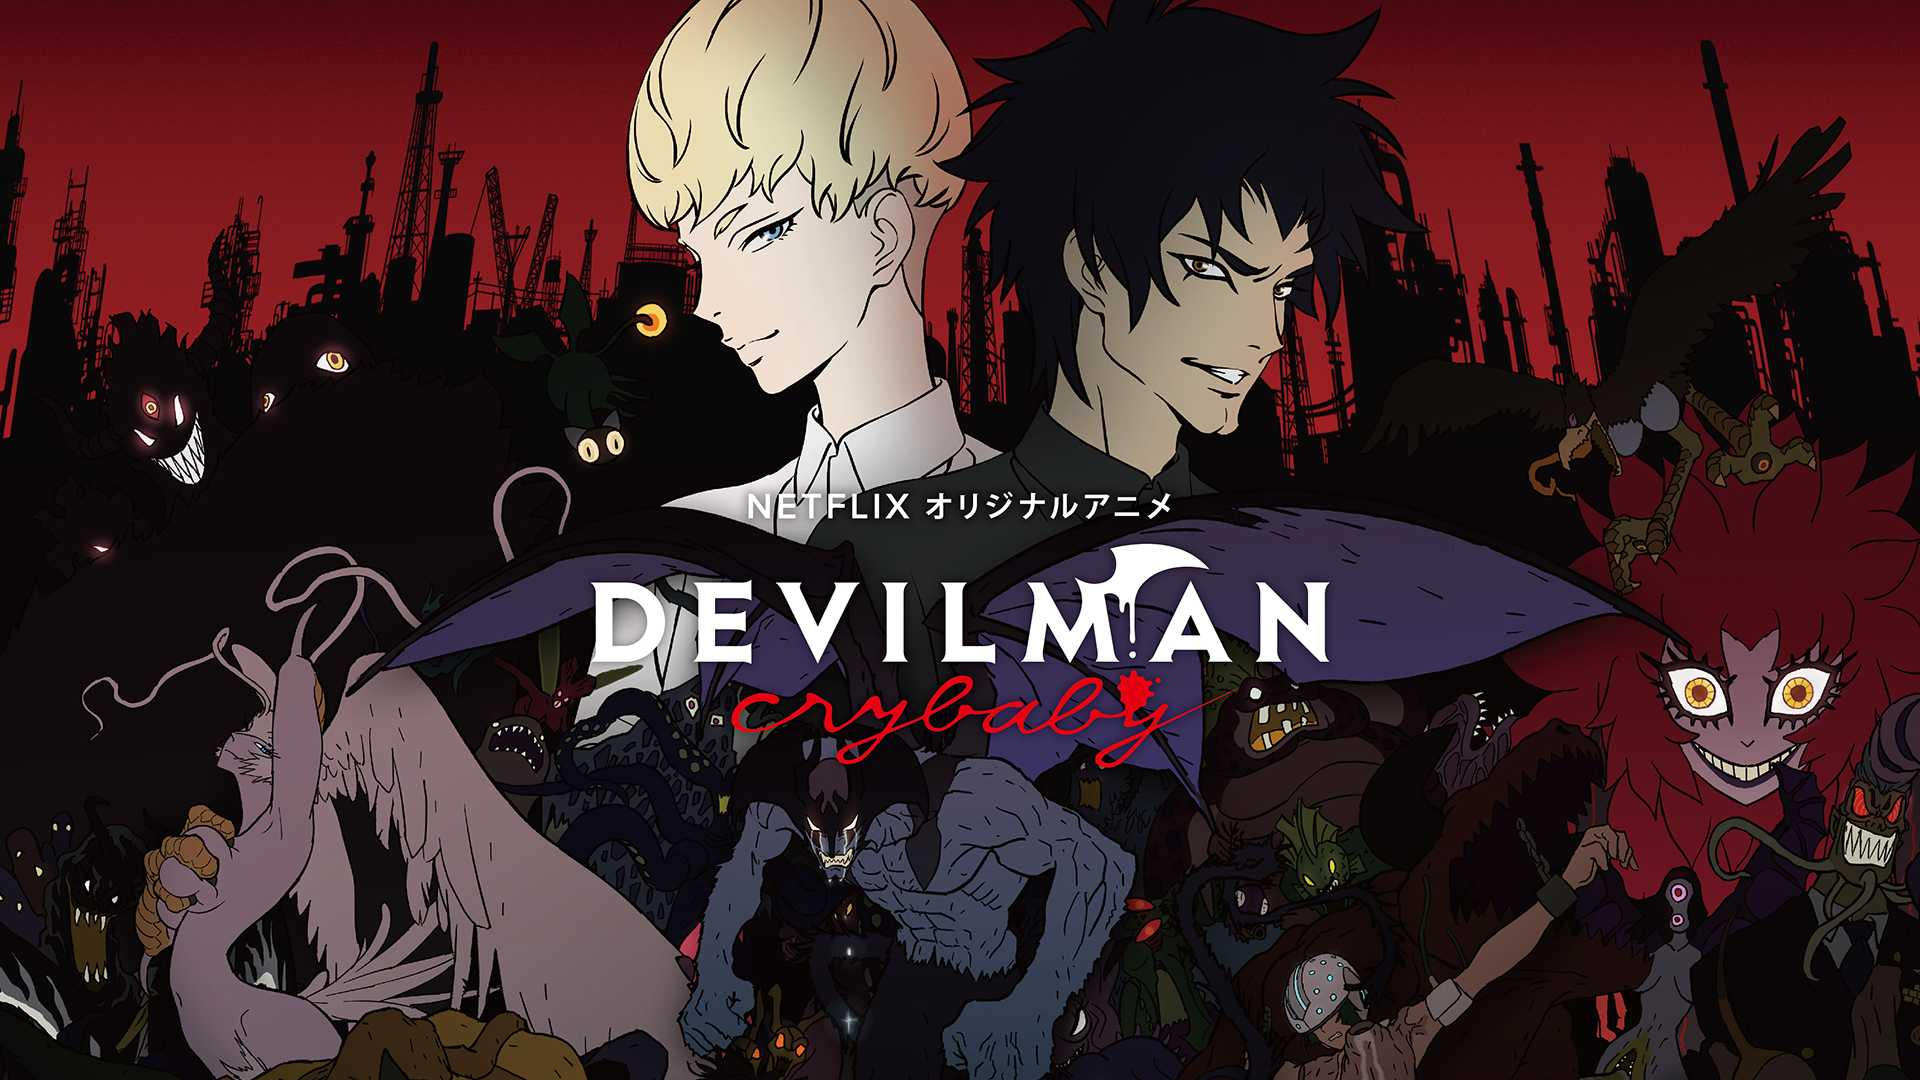 Devilman Crybaby - Anime Where MC is Betrayed And Becomes OP